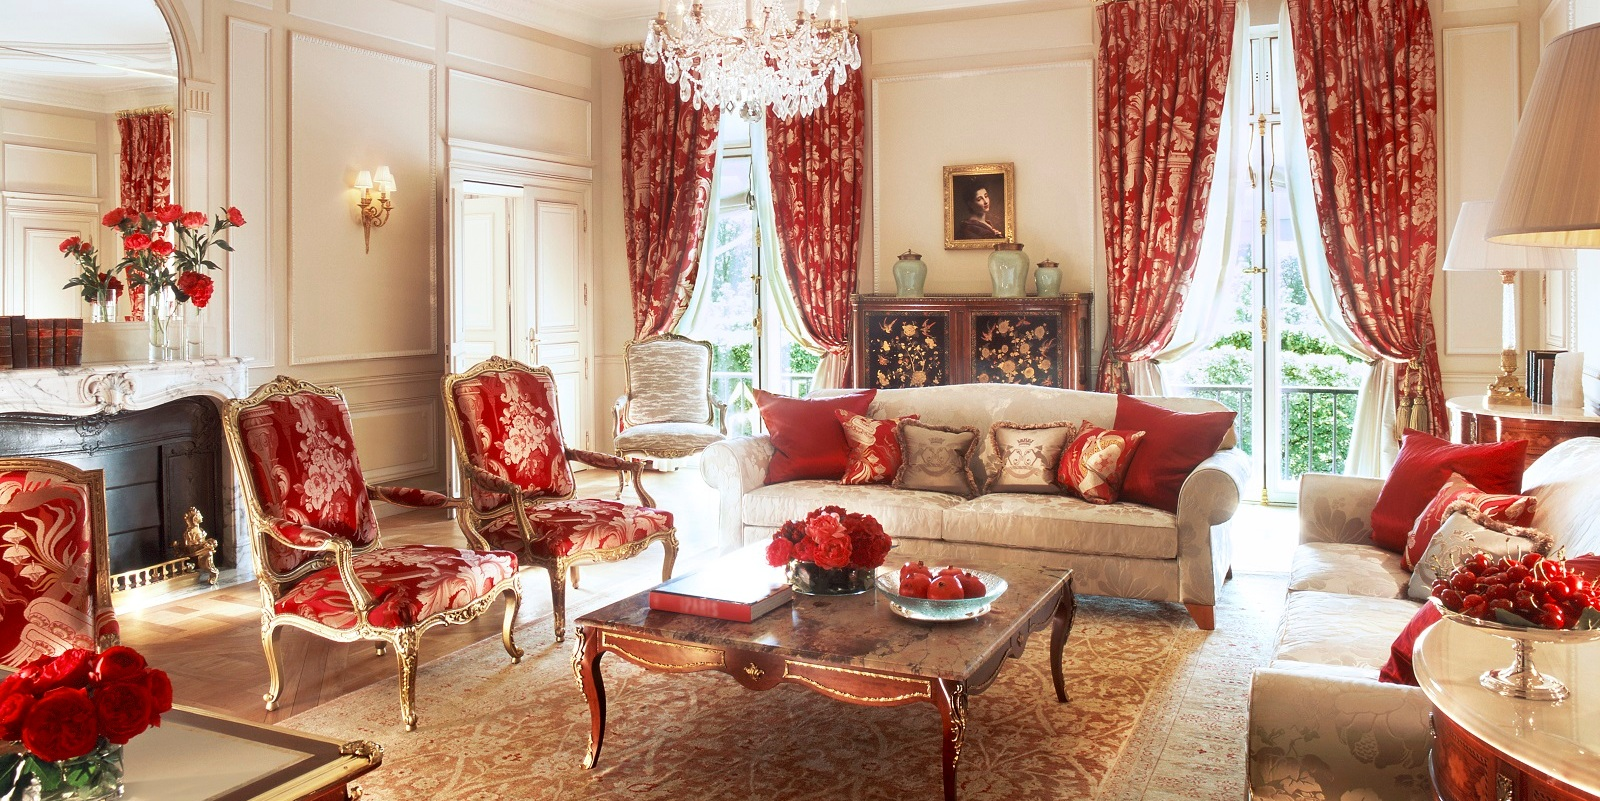 living-room-of-the-presidential-apartment-102-at-le-meurice-paris